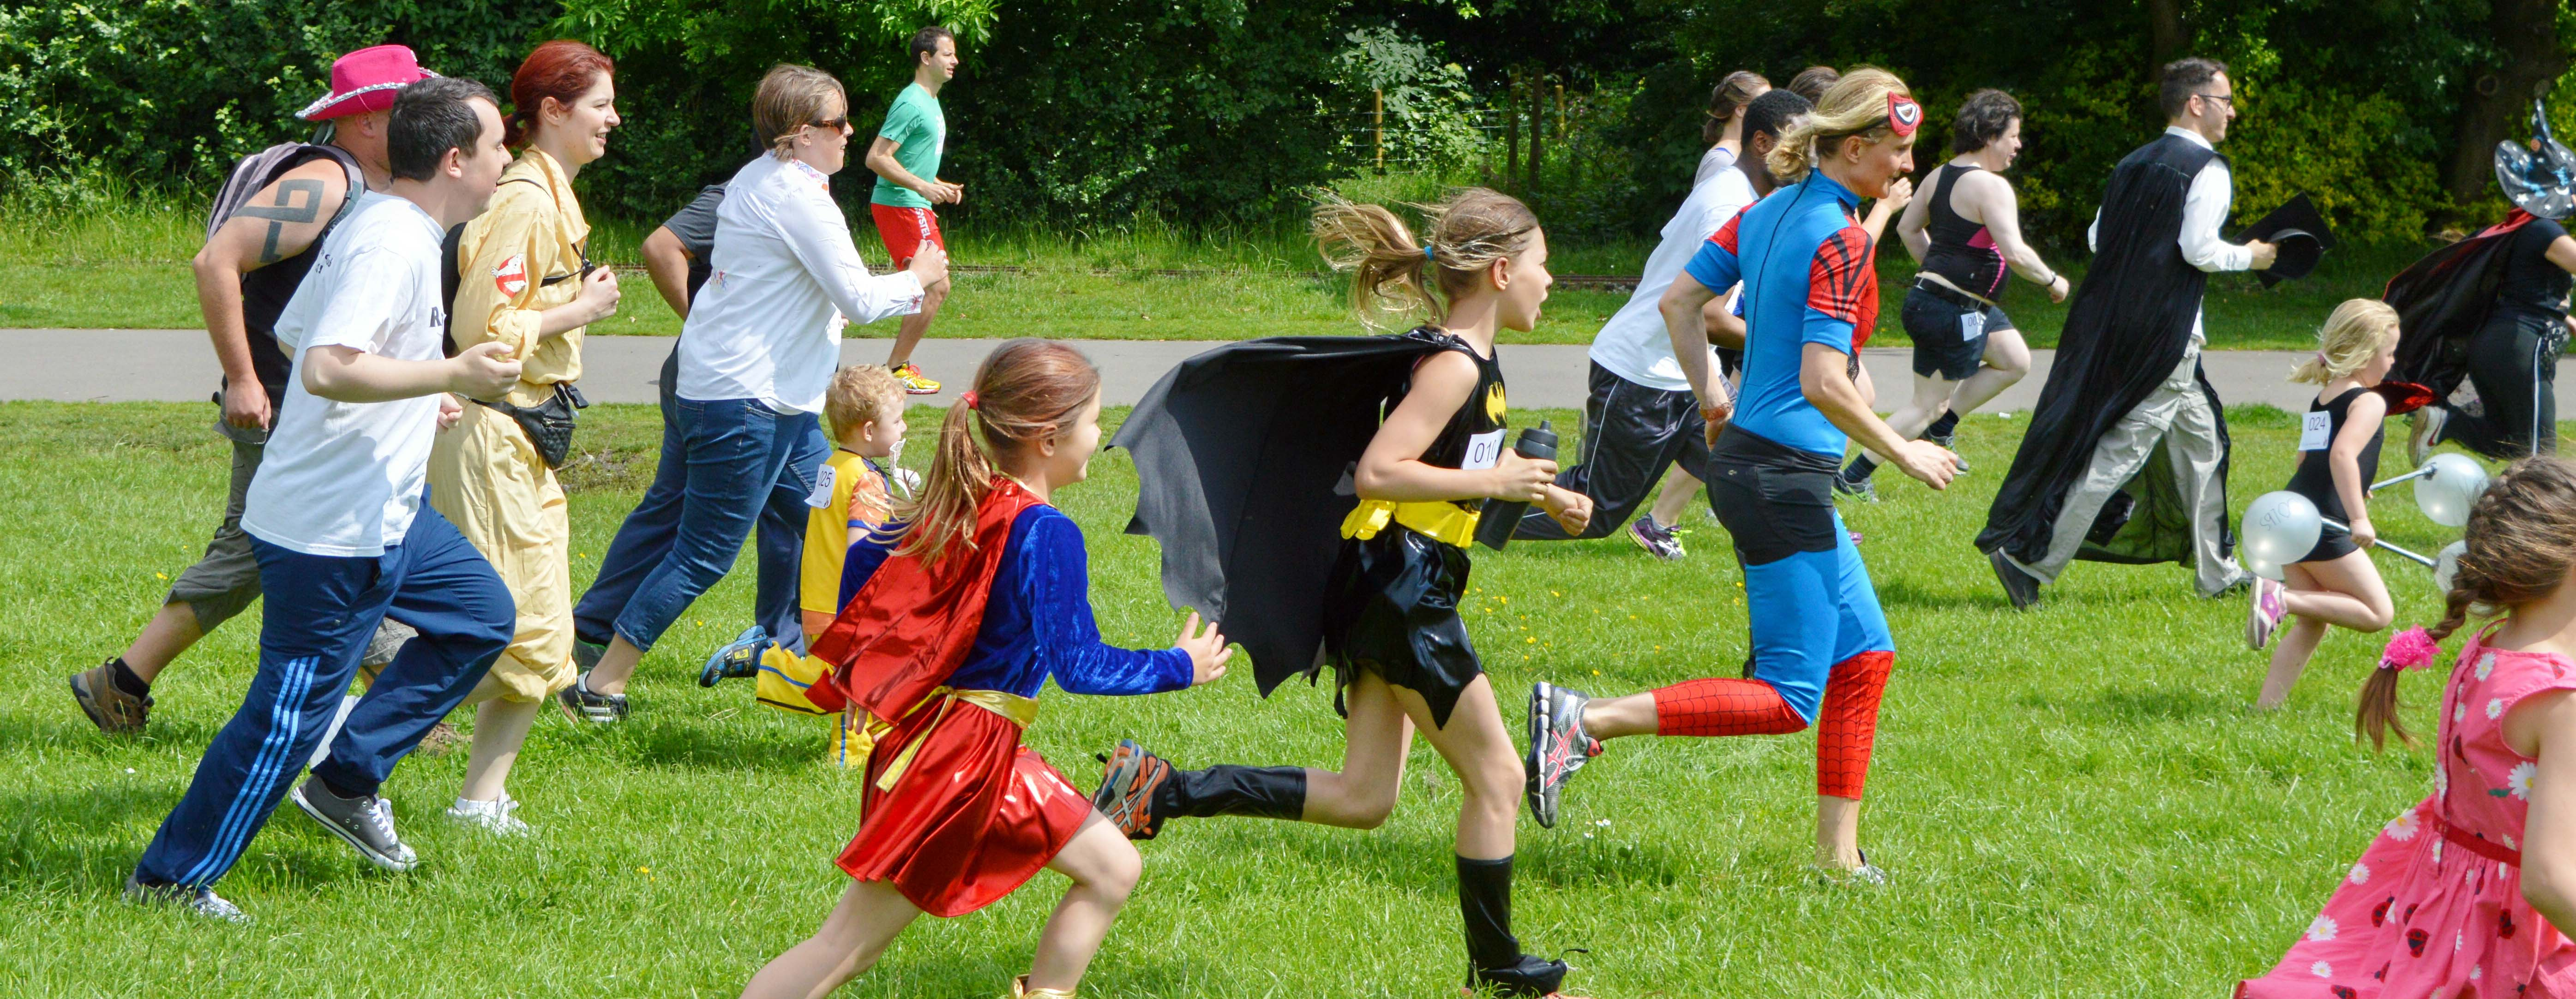 Rathbone Fun Run 2014